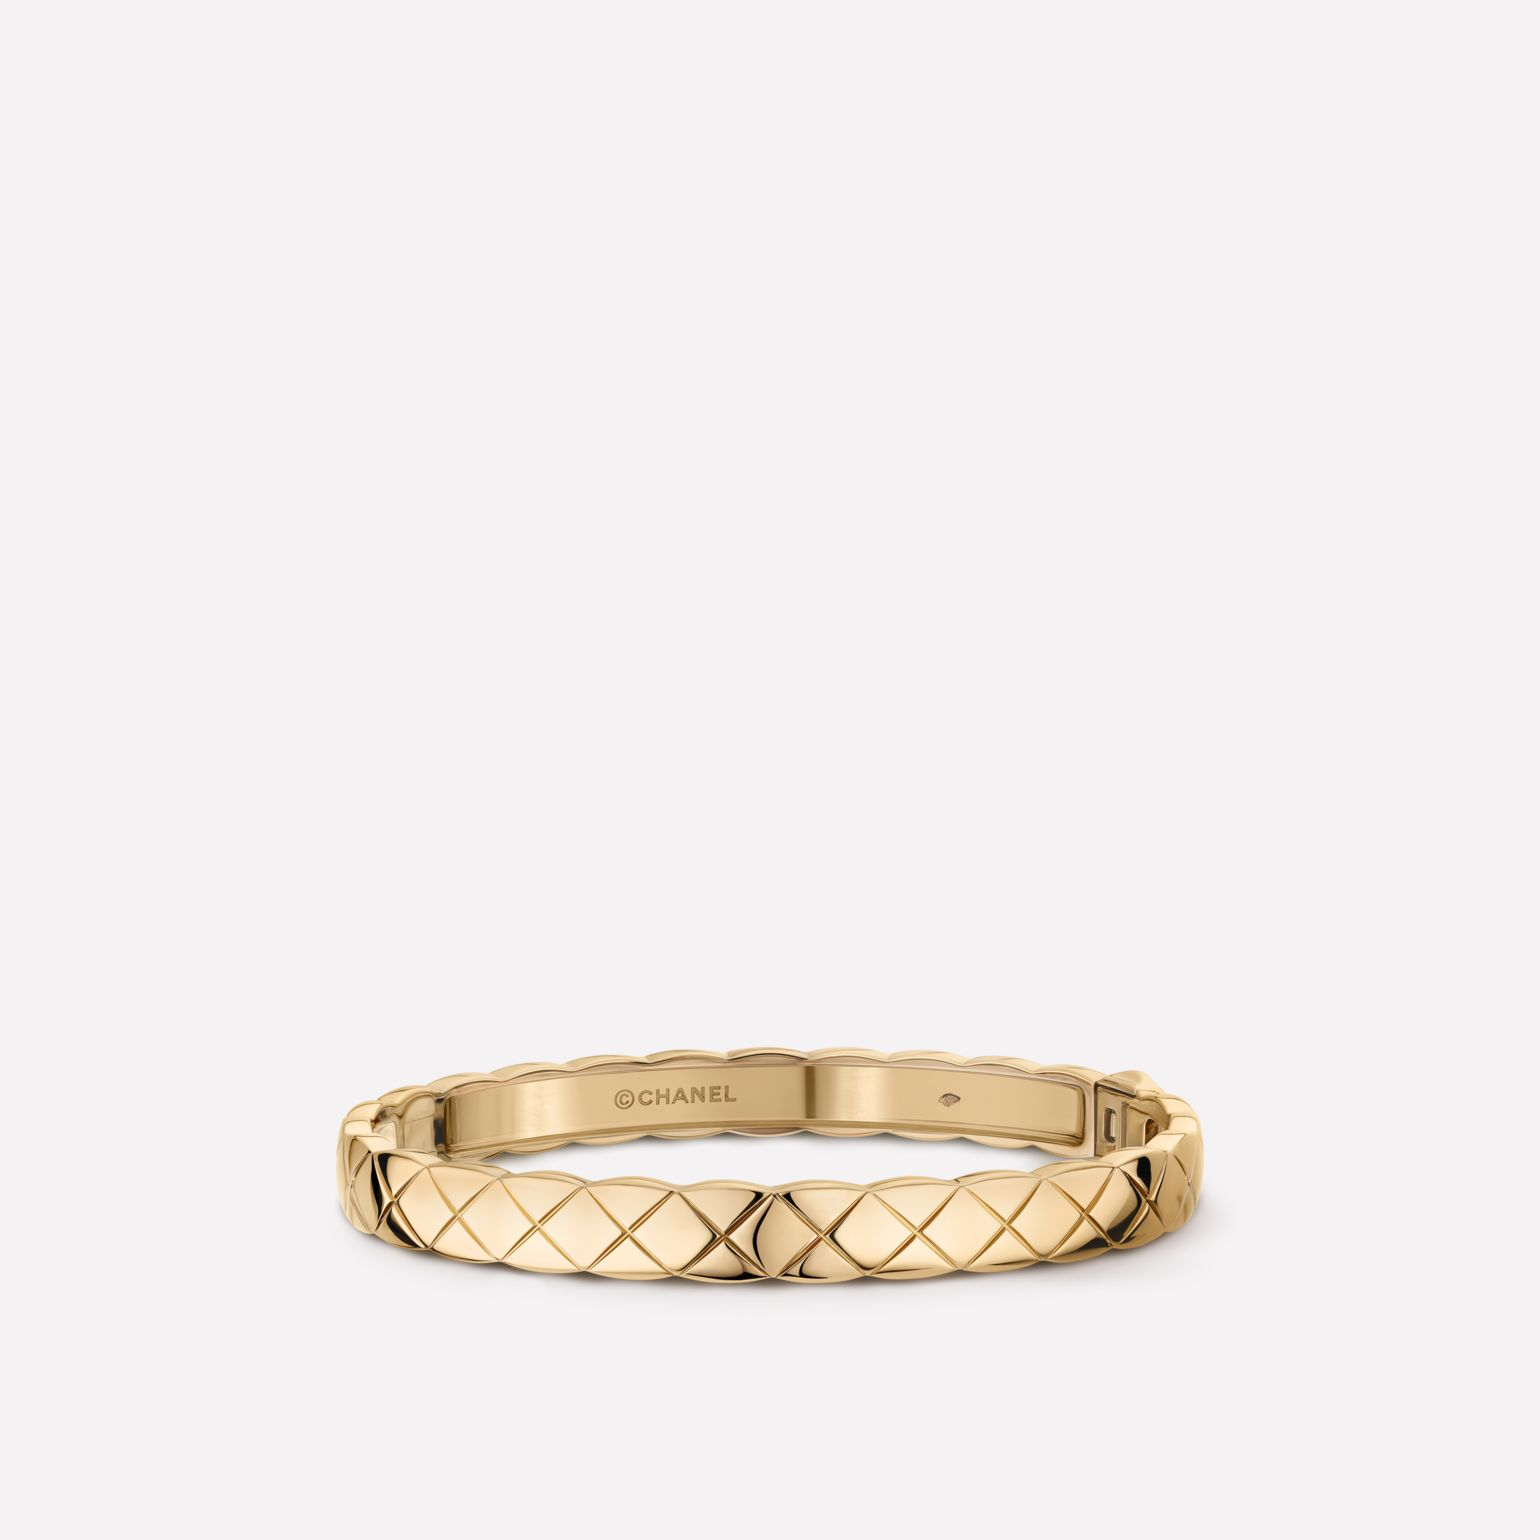 Coco Crush bracelet Quilted motif bangle in 18K BEIGE GOLD